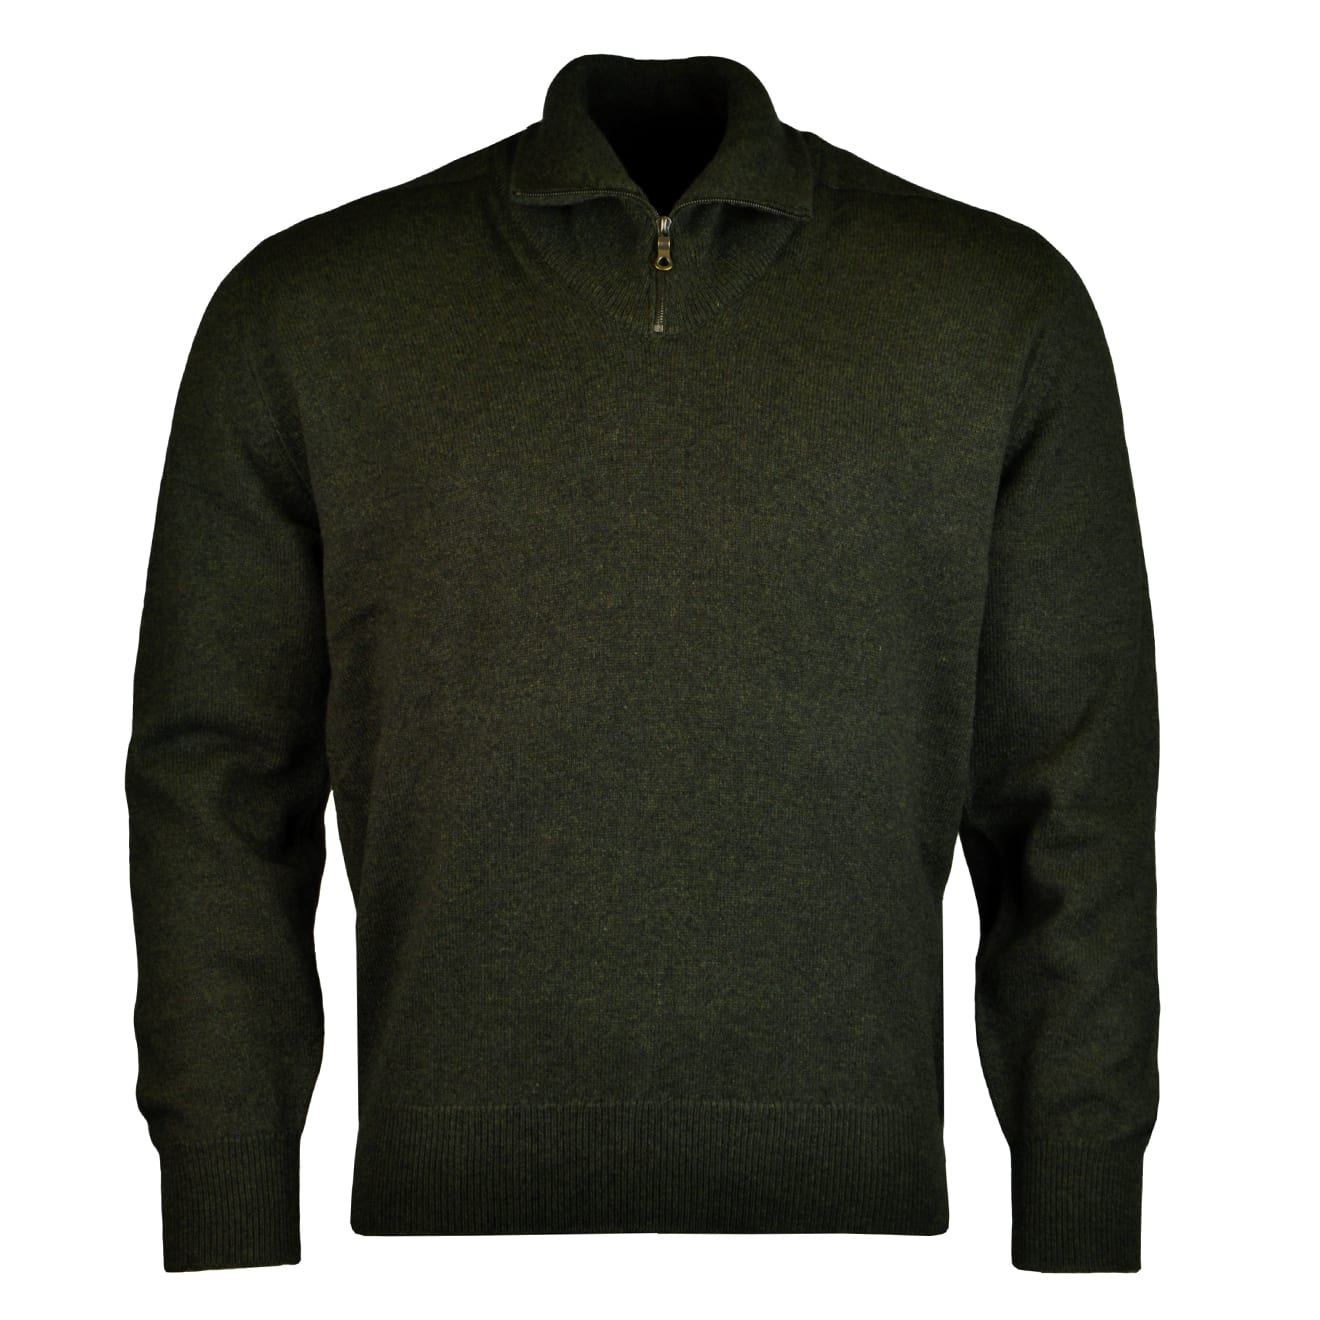 James Purdey Lambswool Half Zip Sweater - The Sporting Lodge